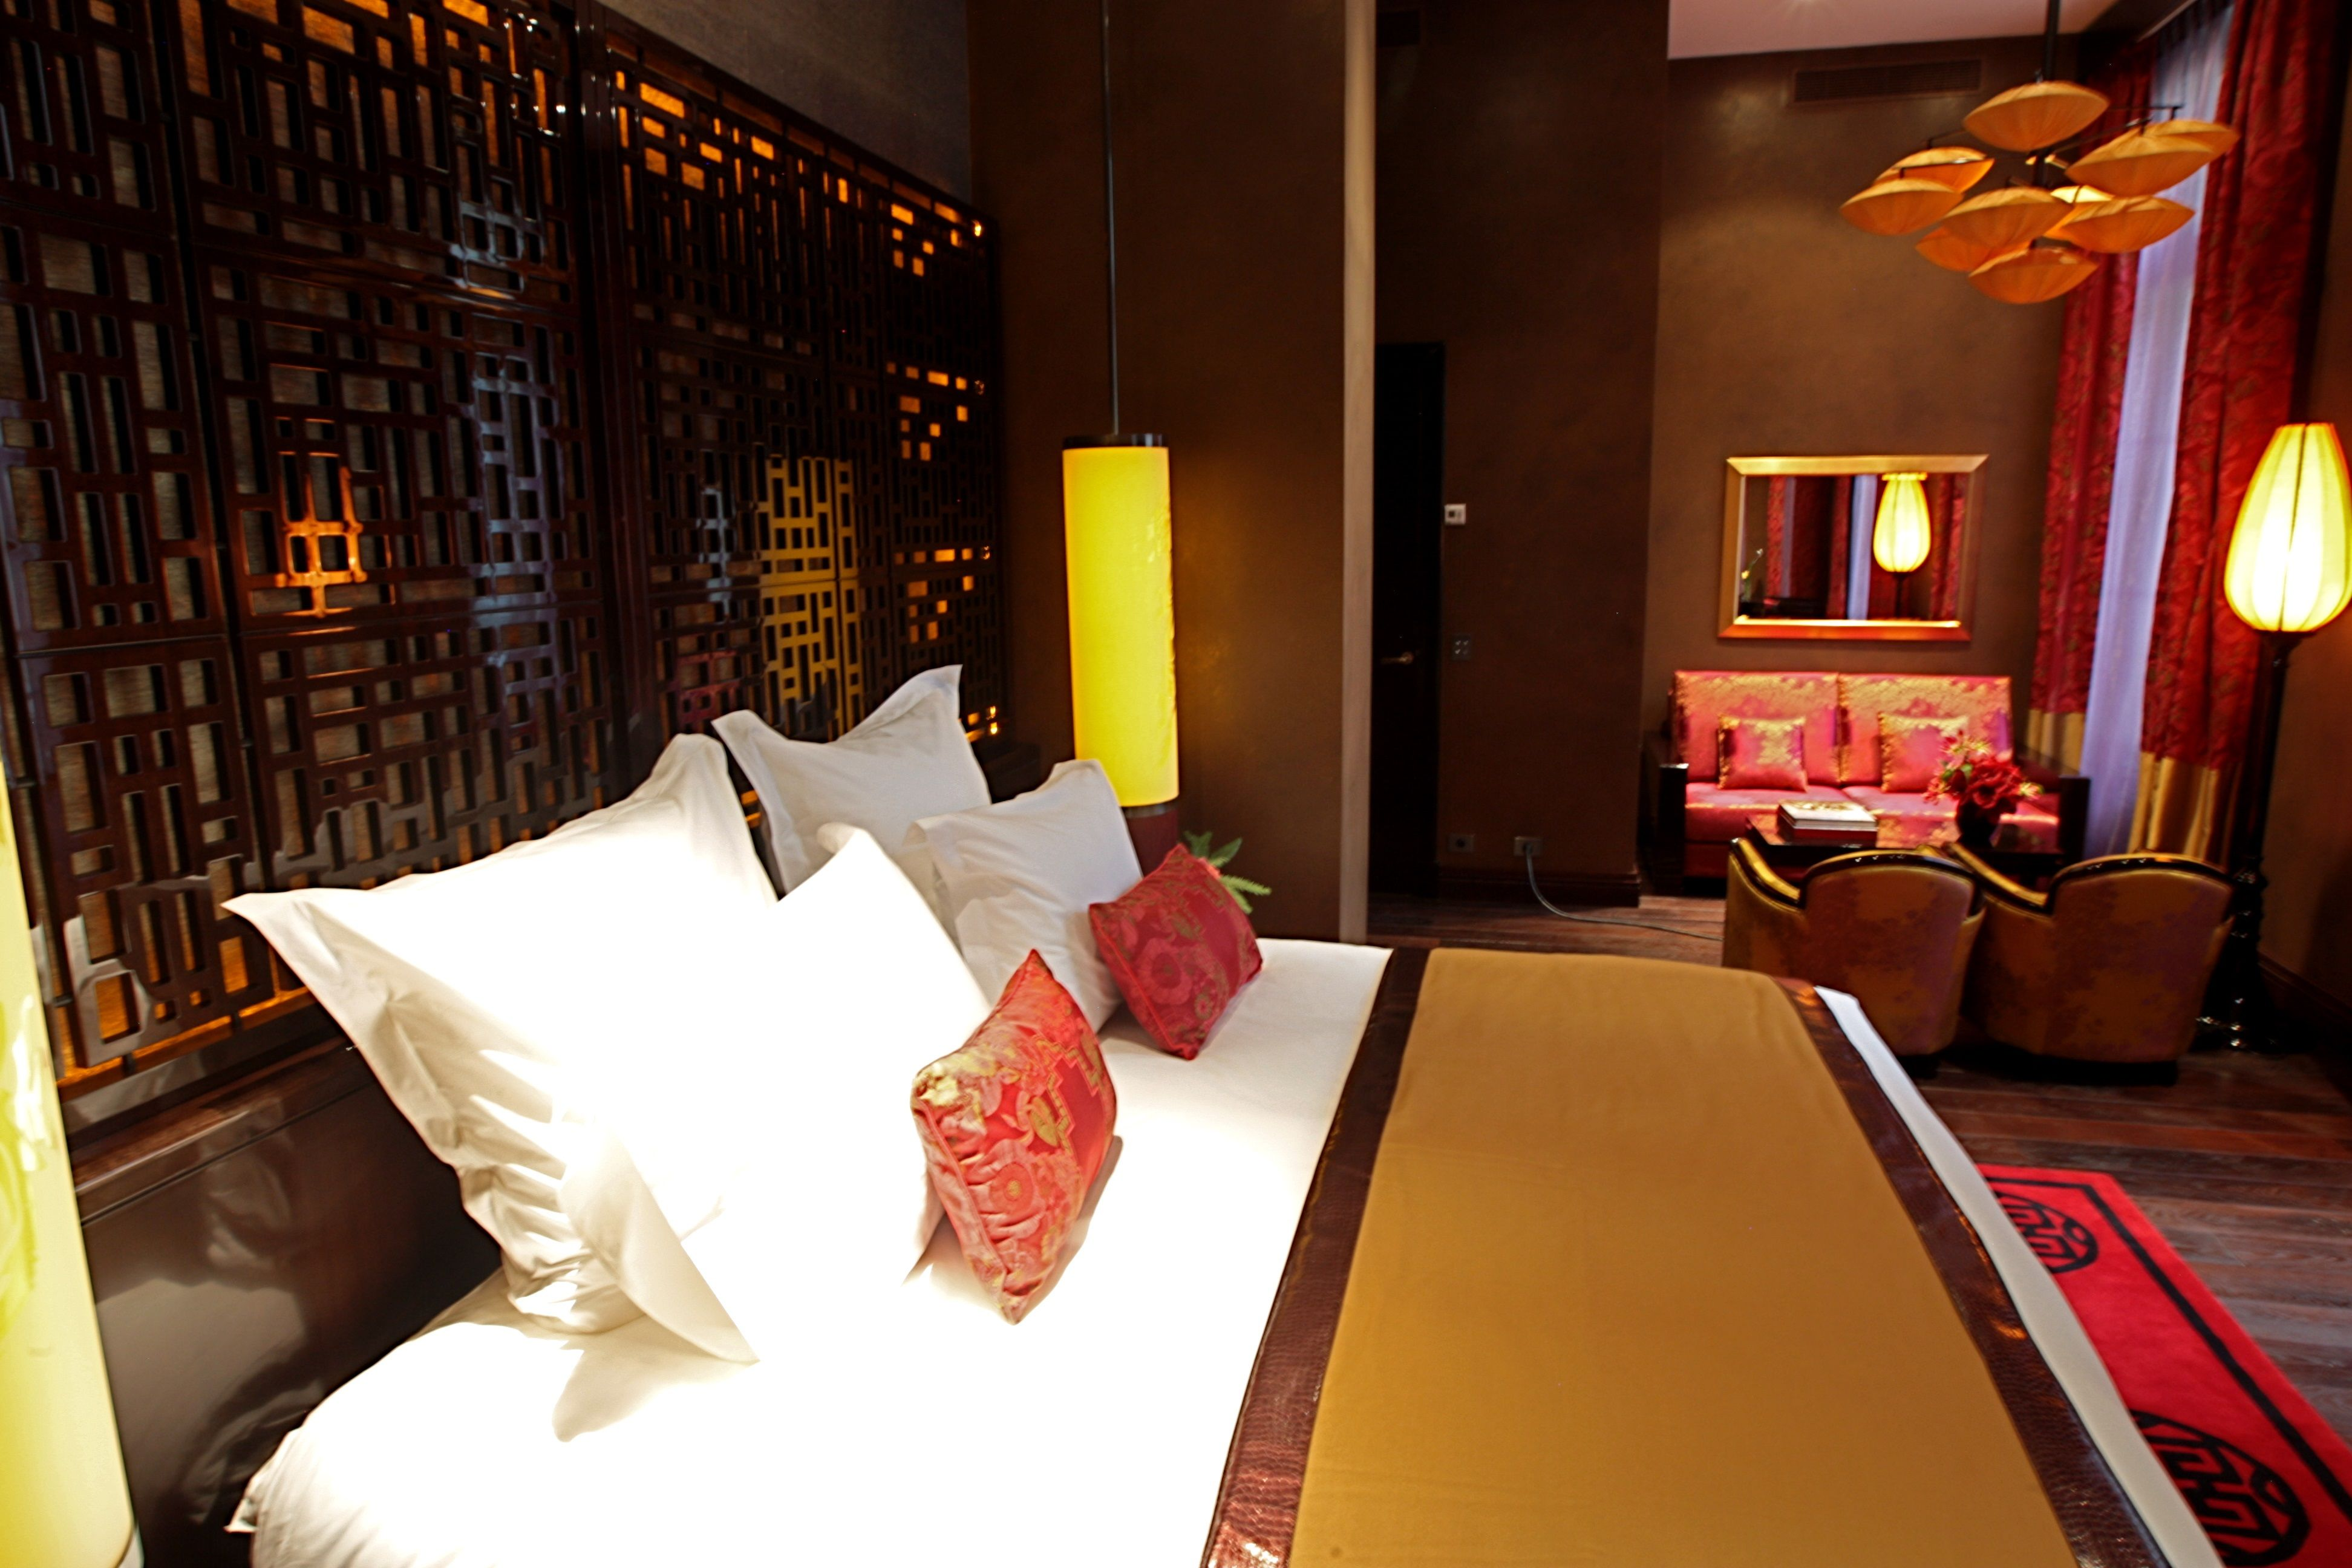 Studio Suite with a living corner with sofa @ Buddha-Bar Hotel Paris, opening June 10th.